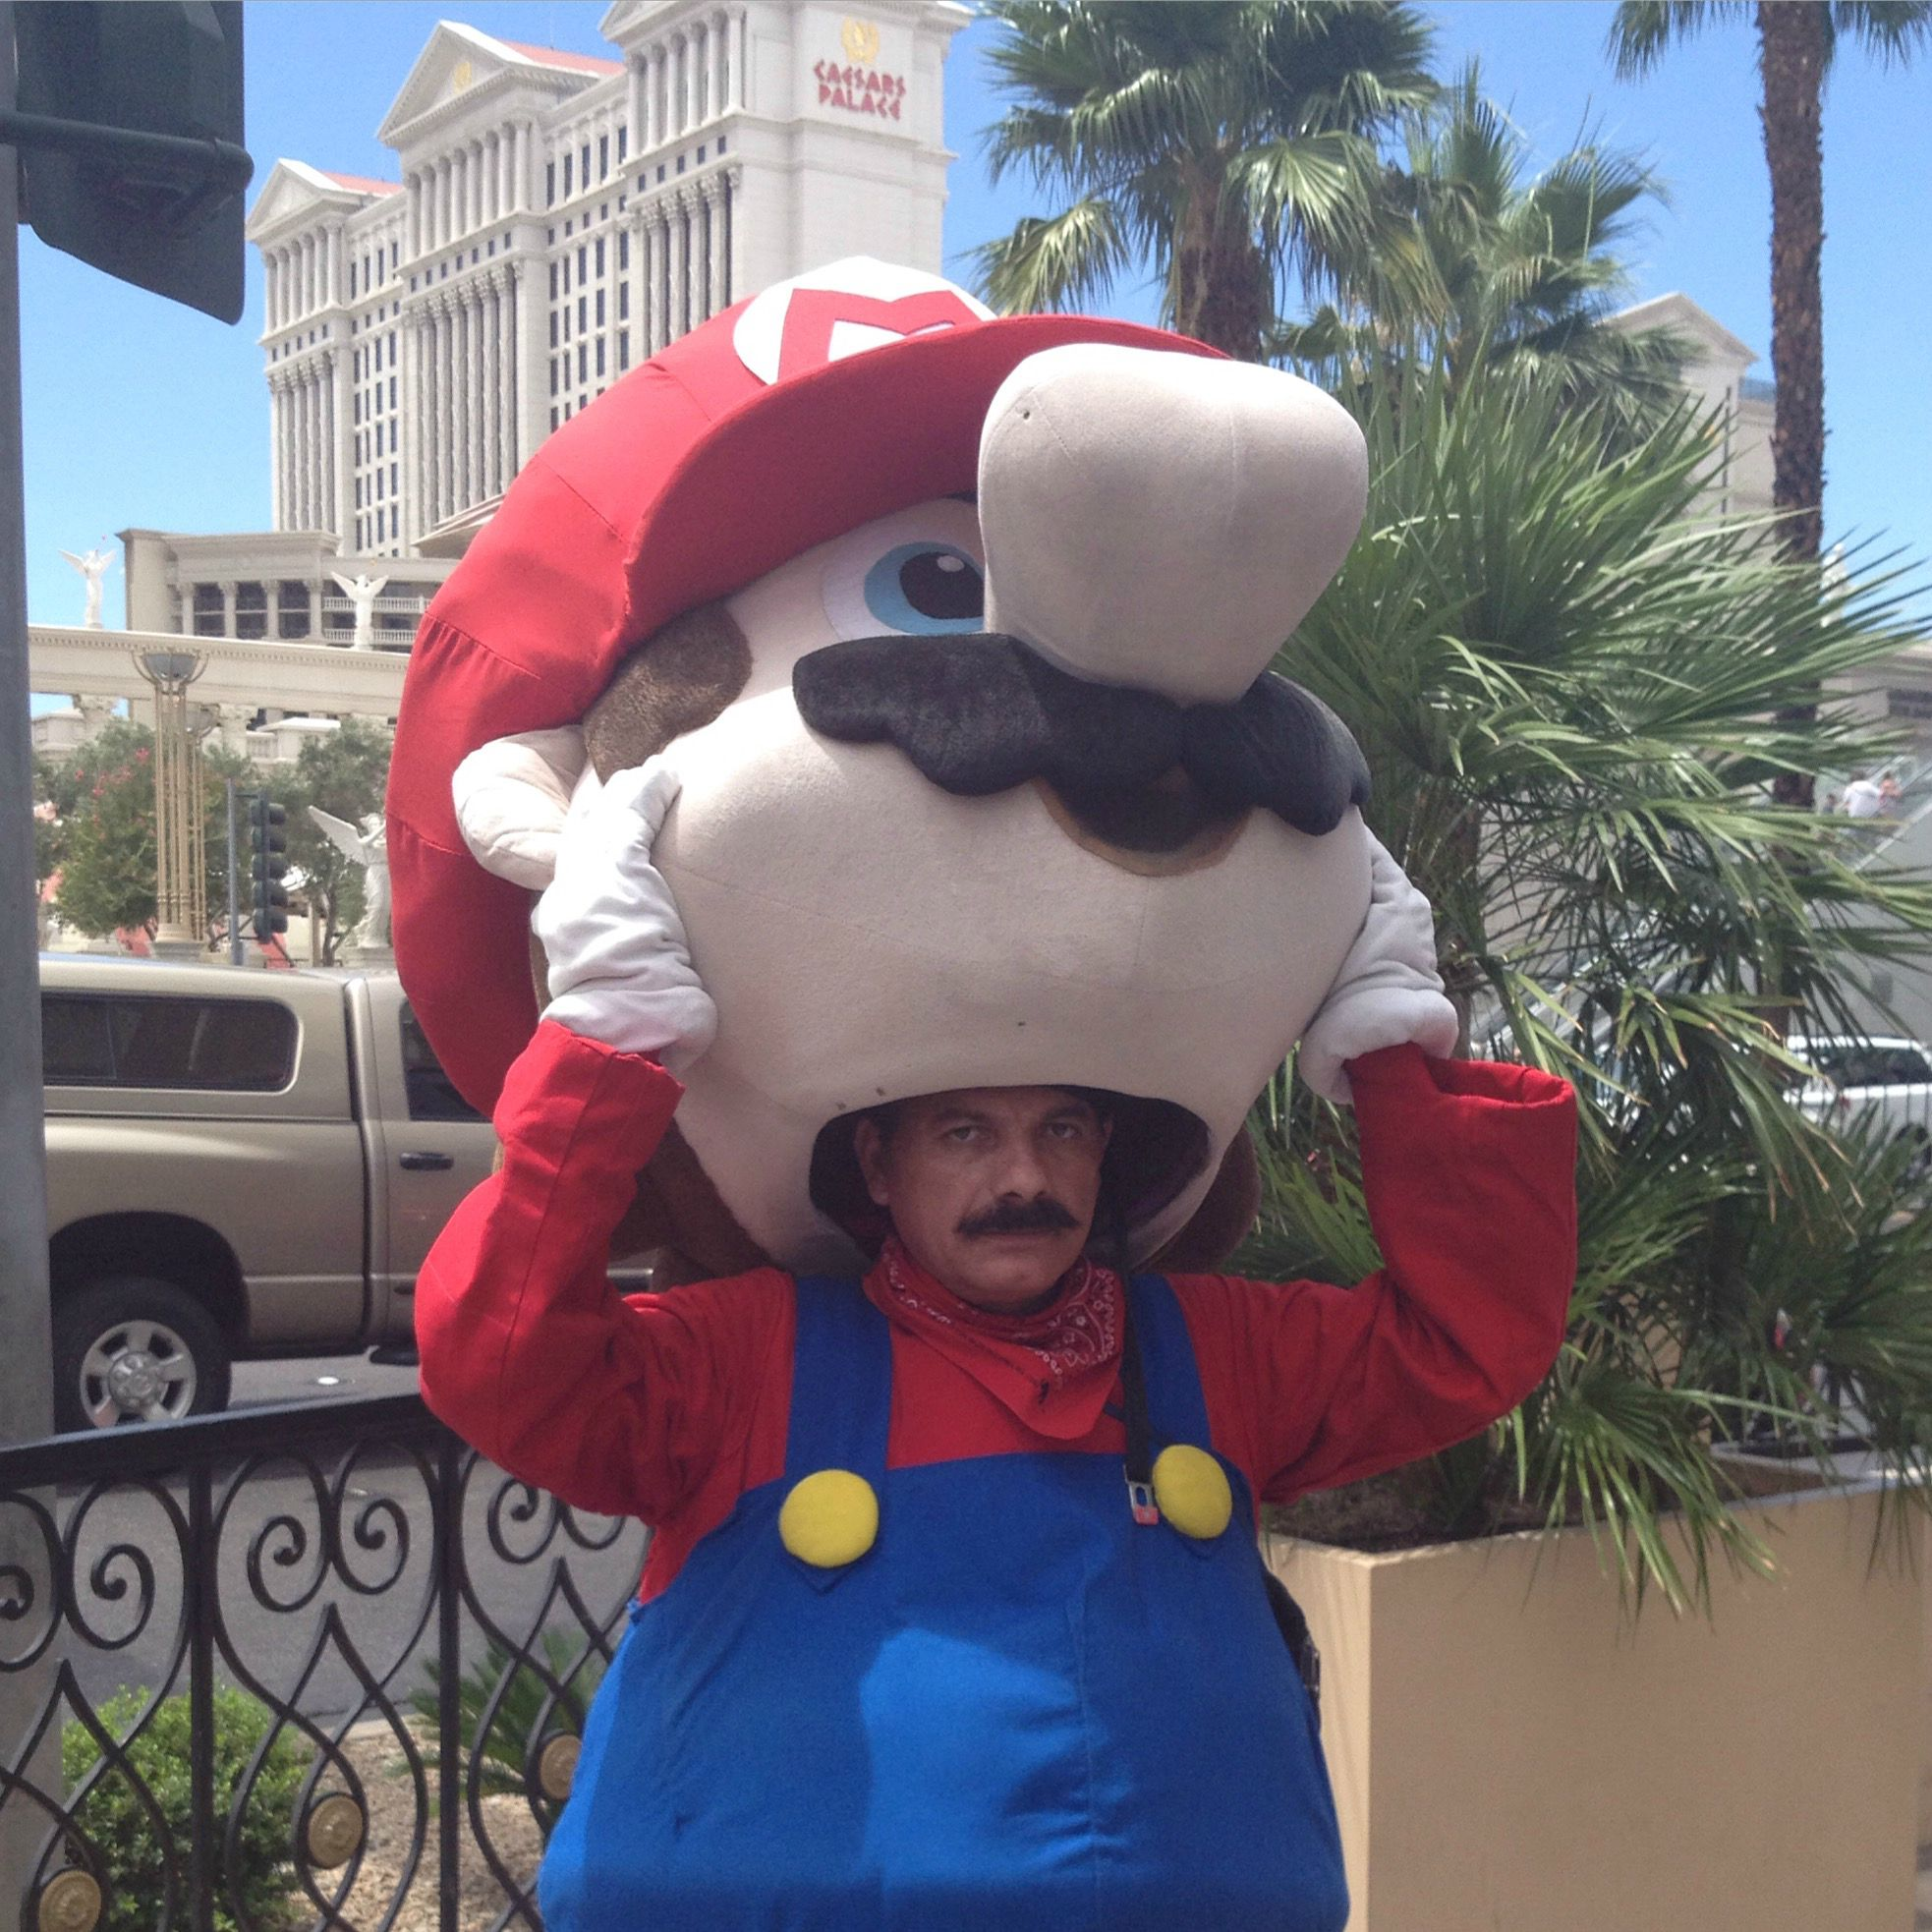 Mario in real life